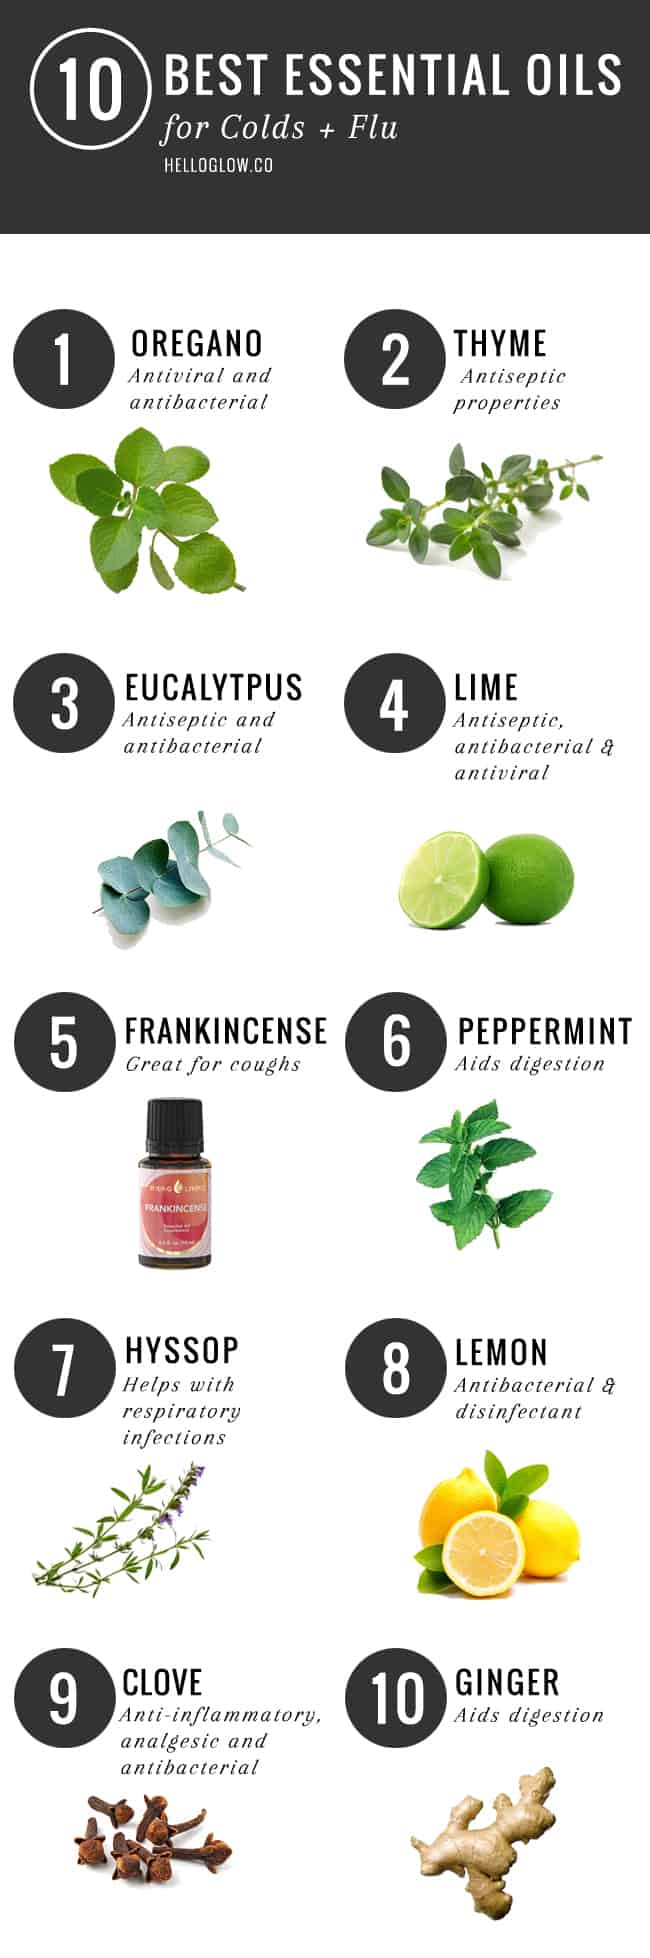 10 Best Essential Oils for Cold & Flu